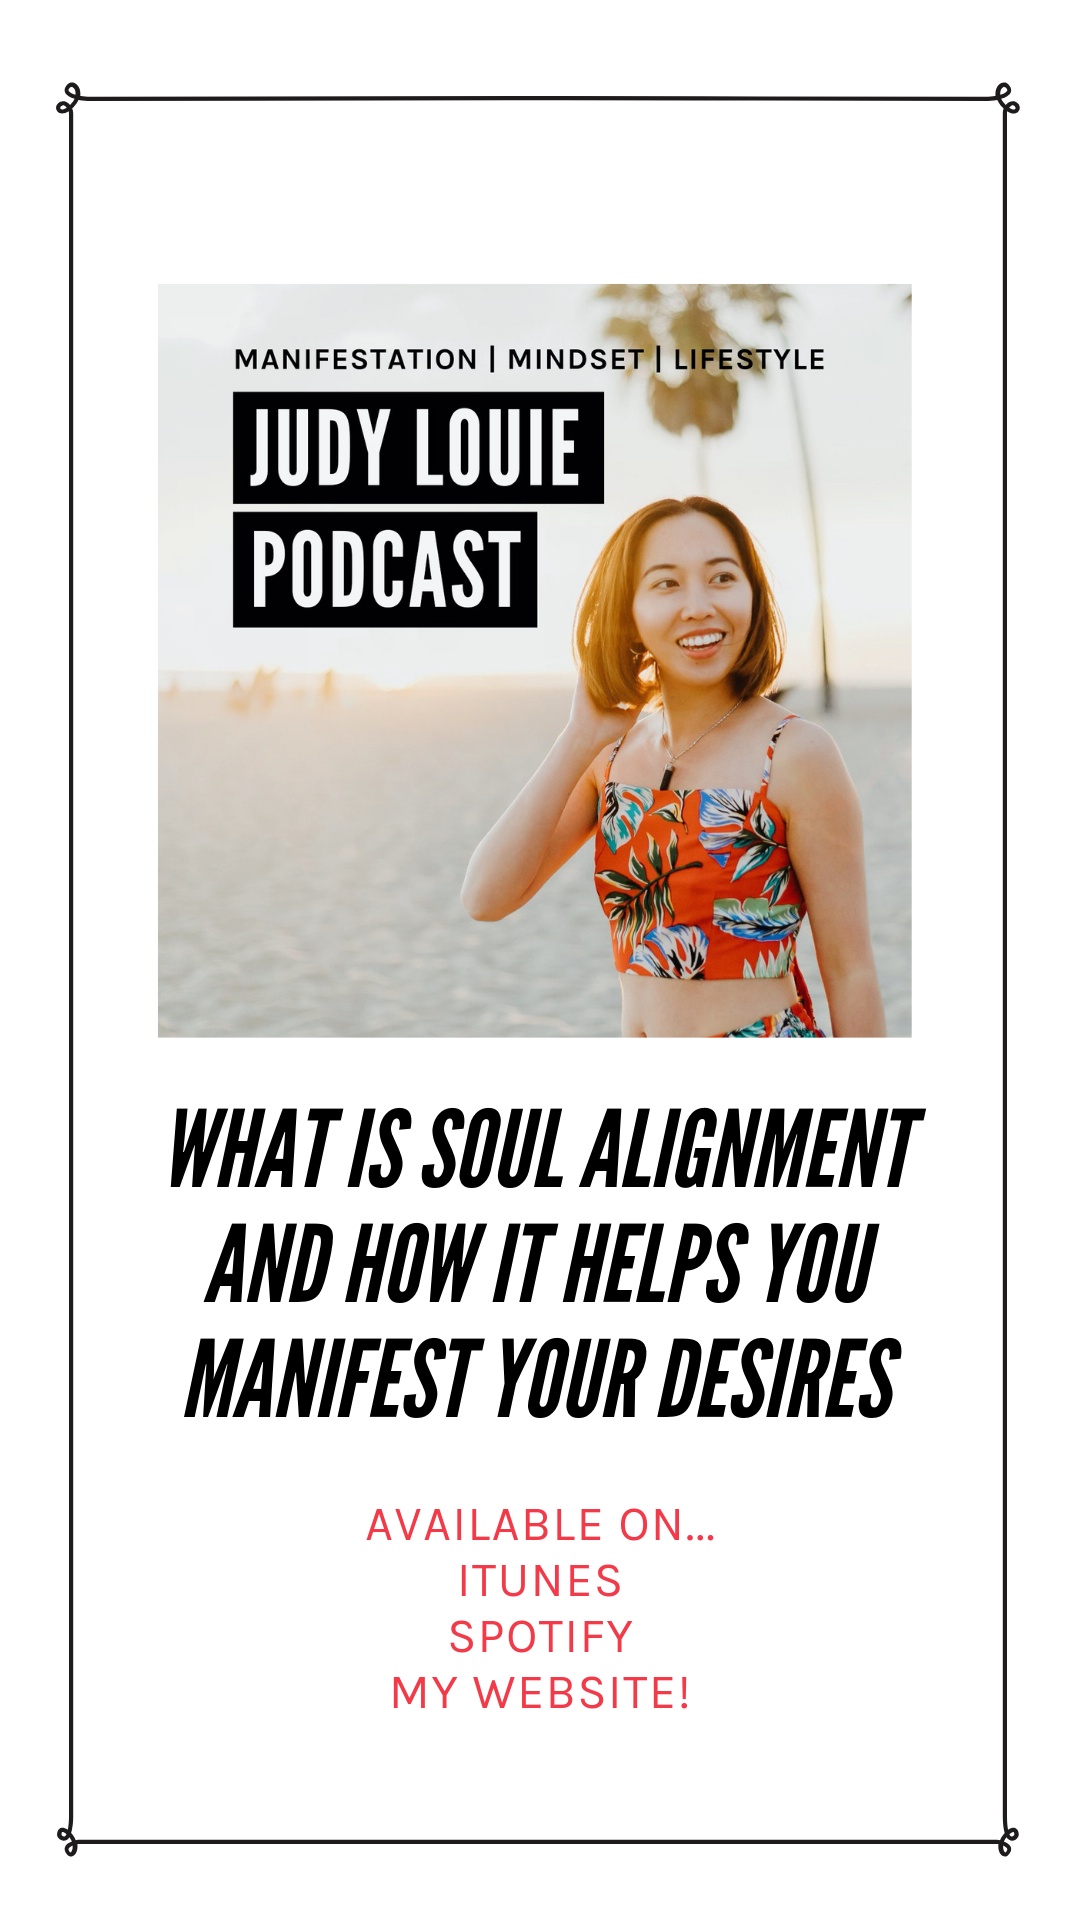 judy louie podcast - soul alignment.png